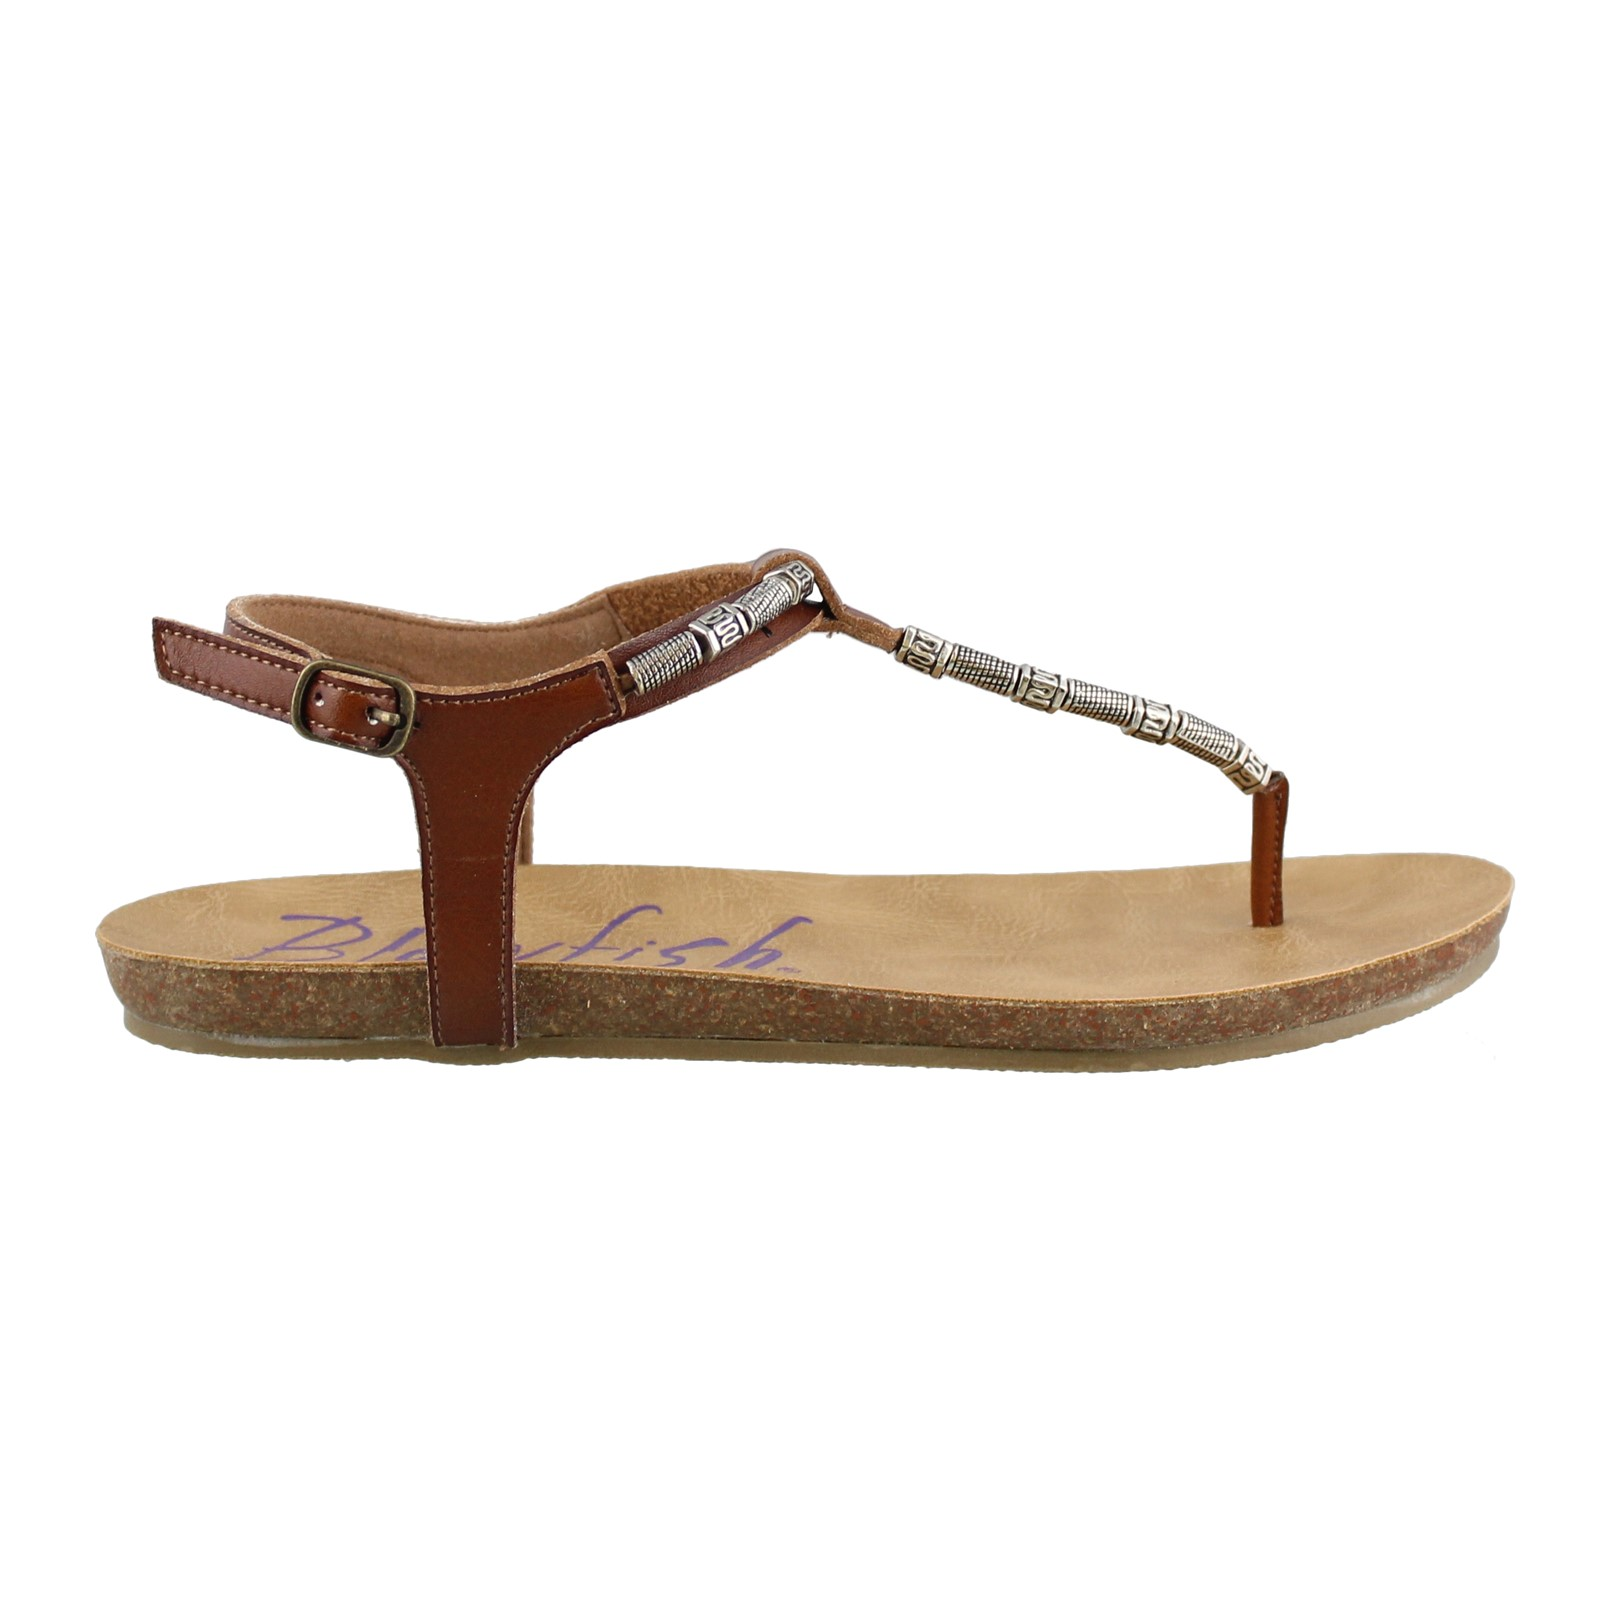 Women's Blowfish, Galoya Sandals